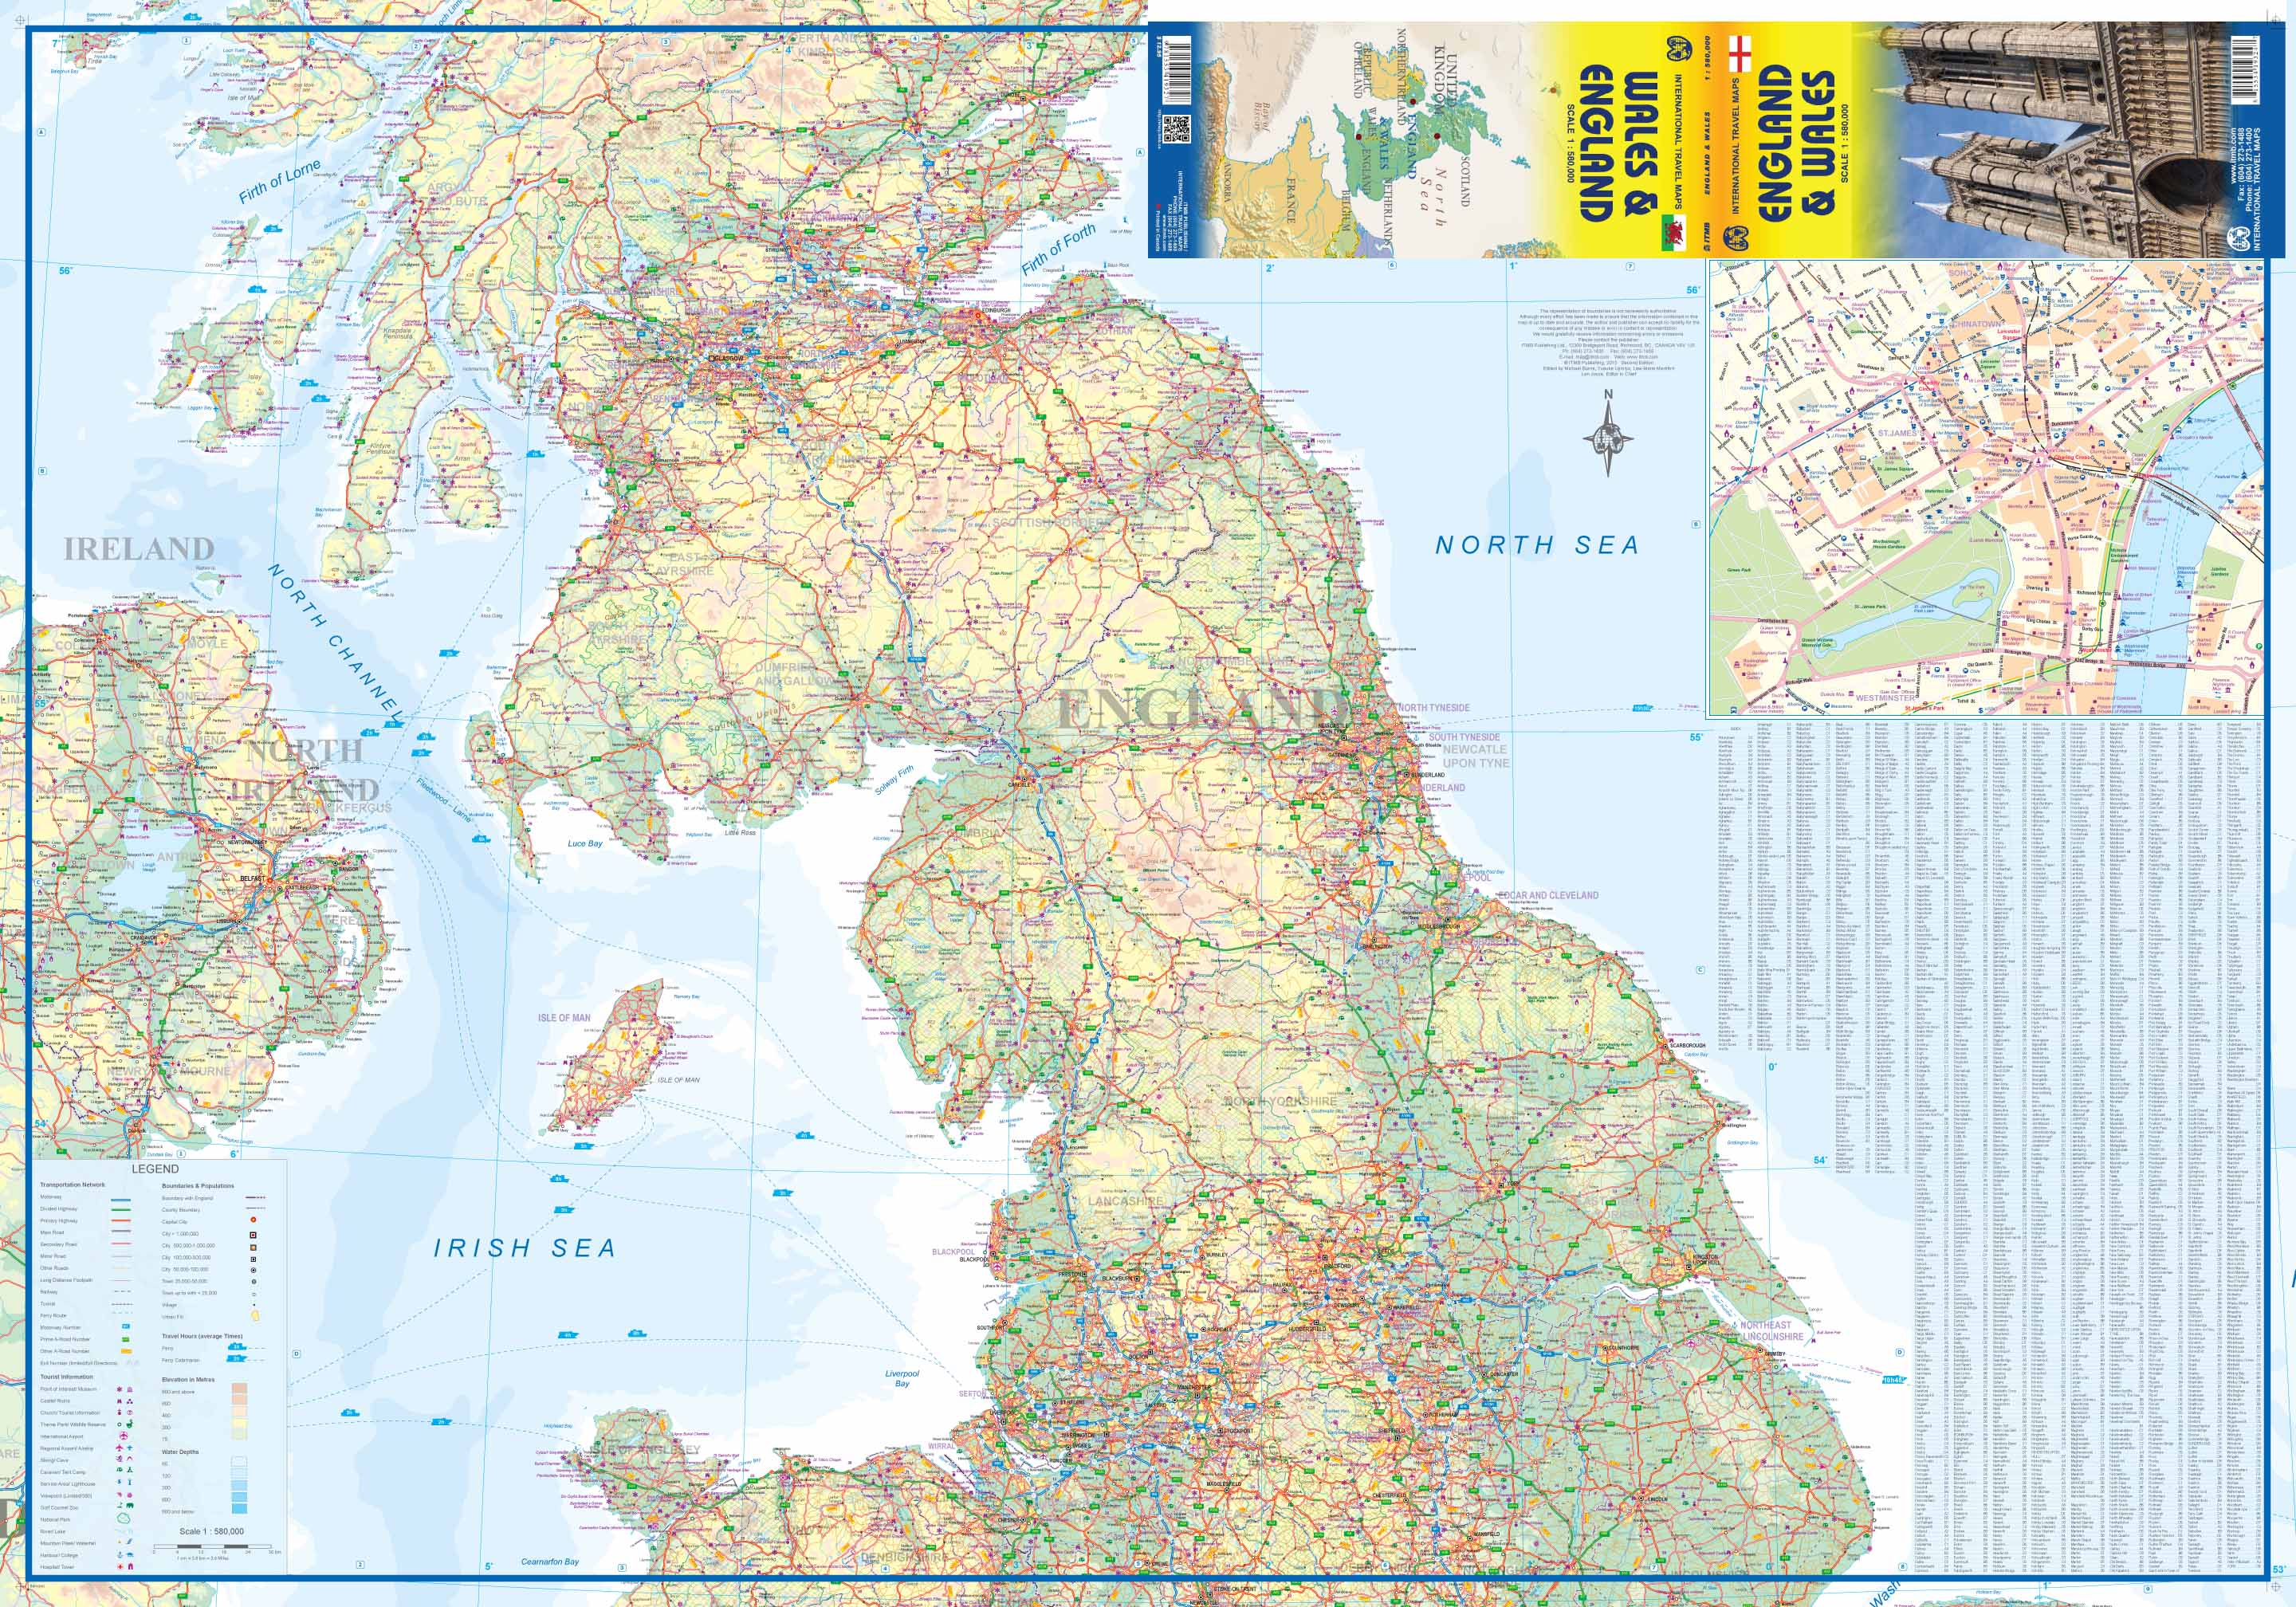 Map Of England And Wales With Towns.Maps For Travel City Maps Road Maps Guides Globes Topographic Maps